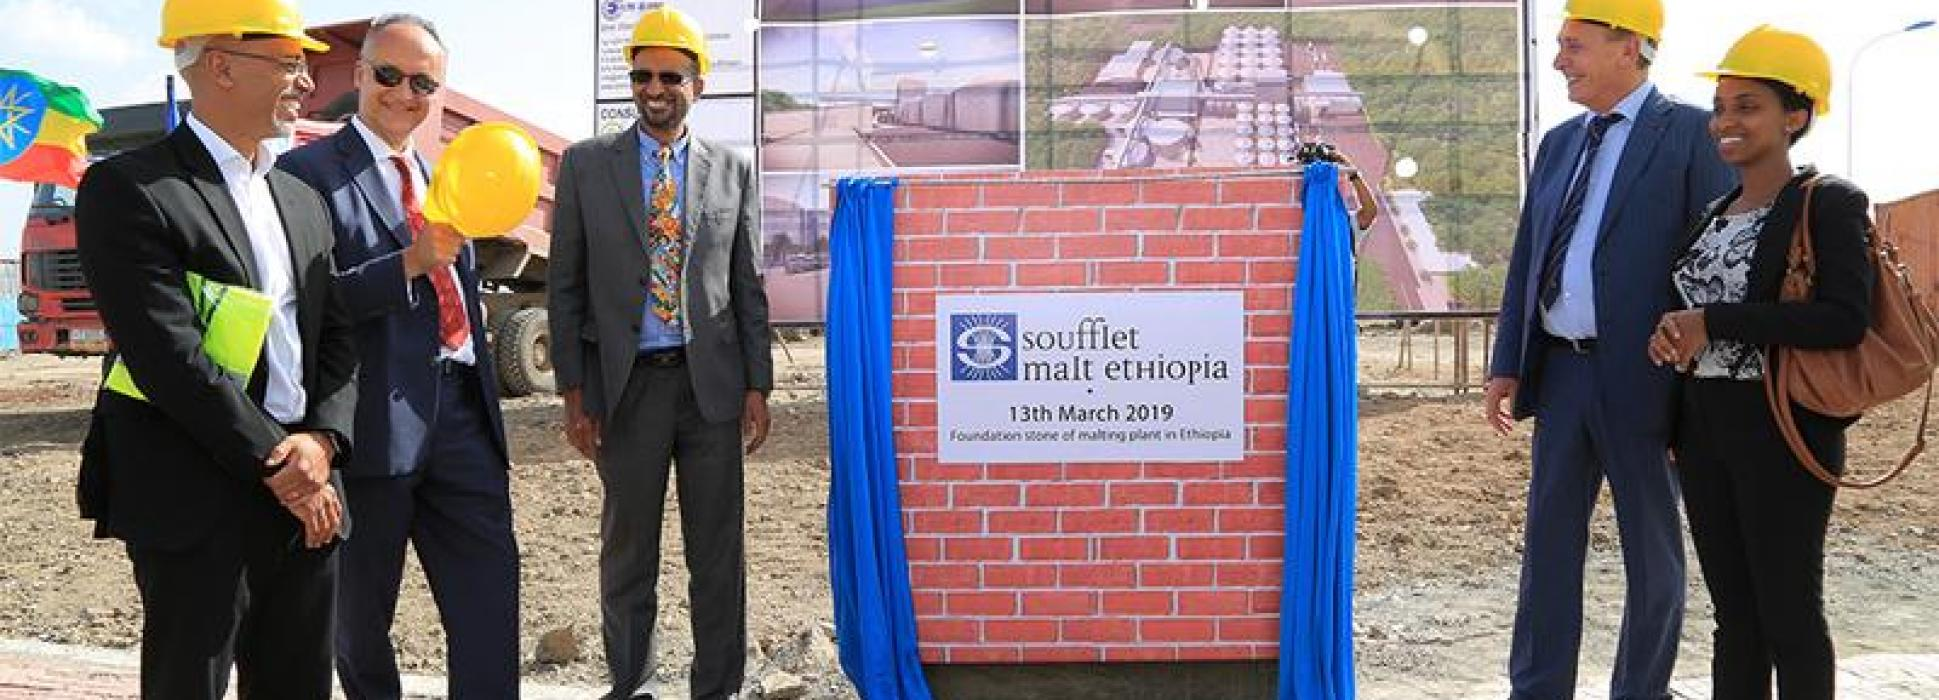 The Soufflet malting company continues its international expansion and sets up shop in Addis Ababa, Ethiopia